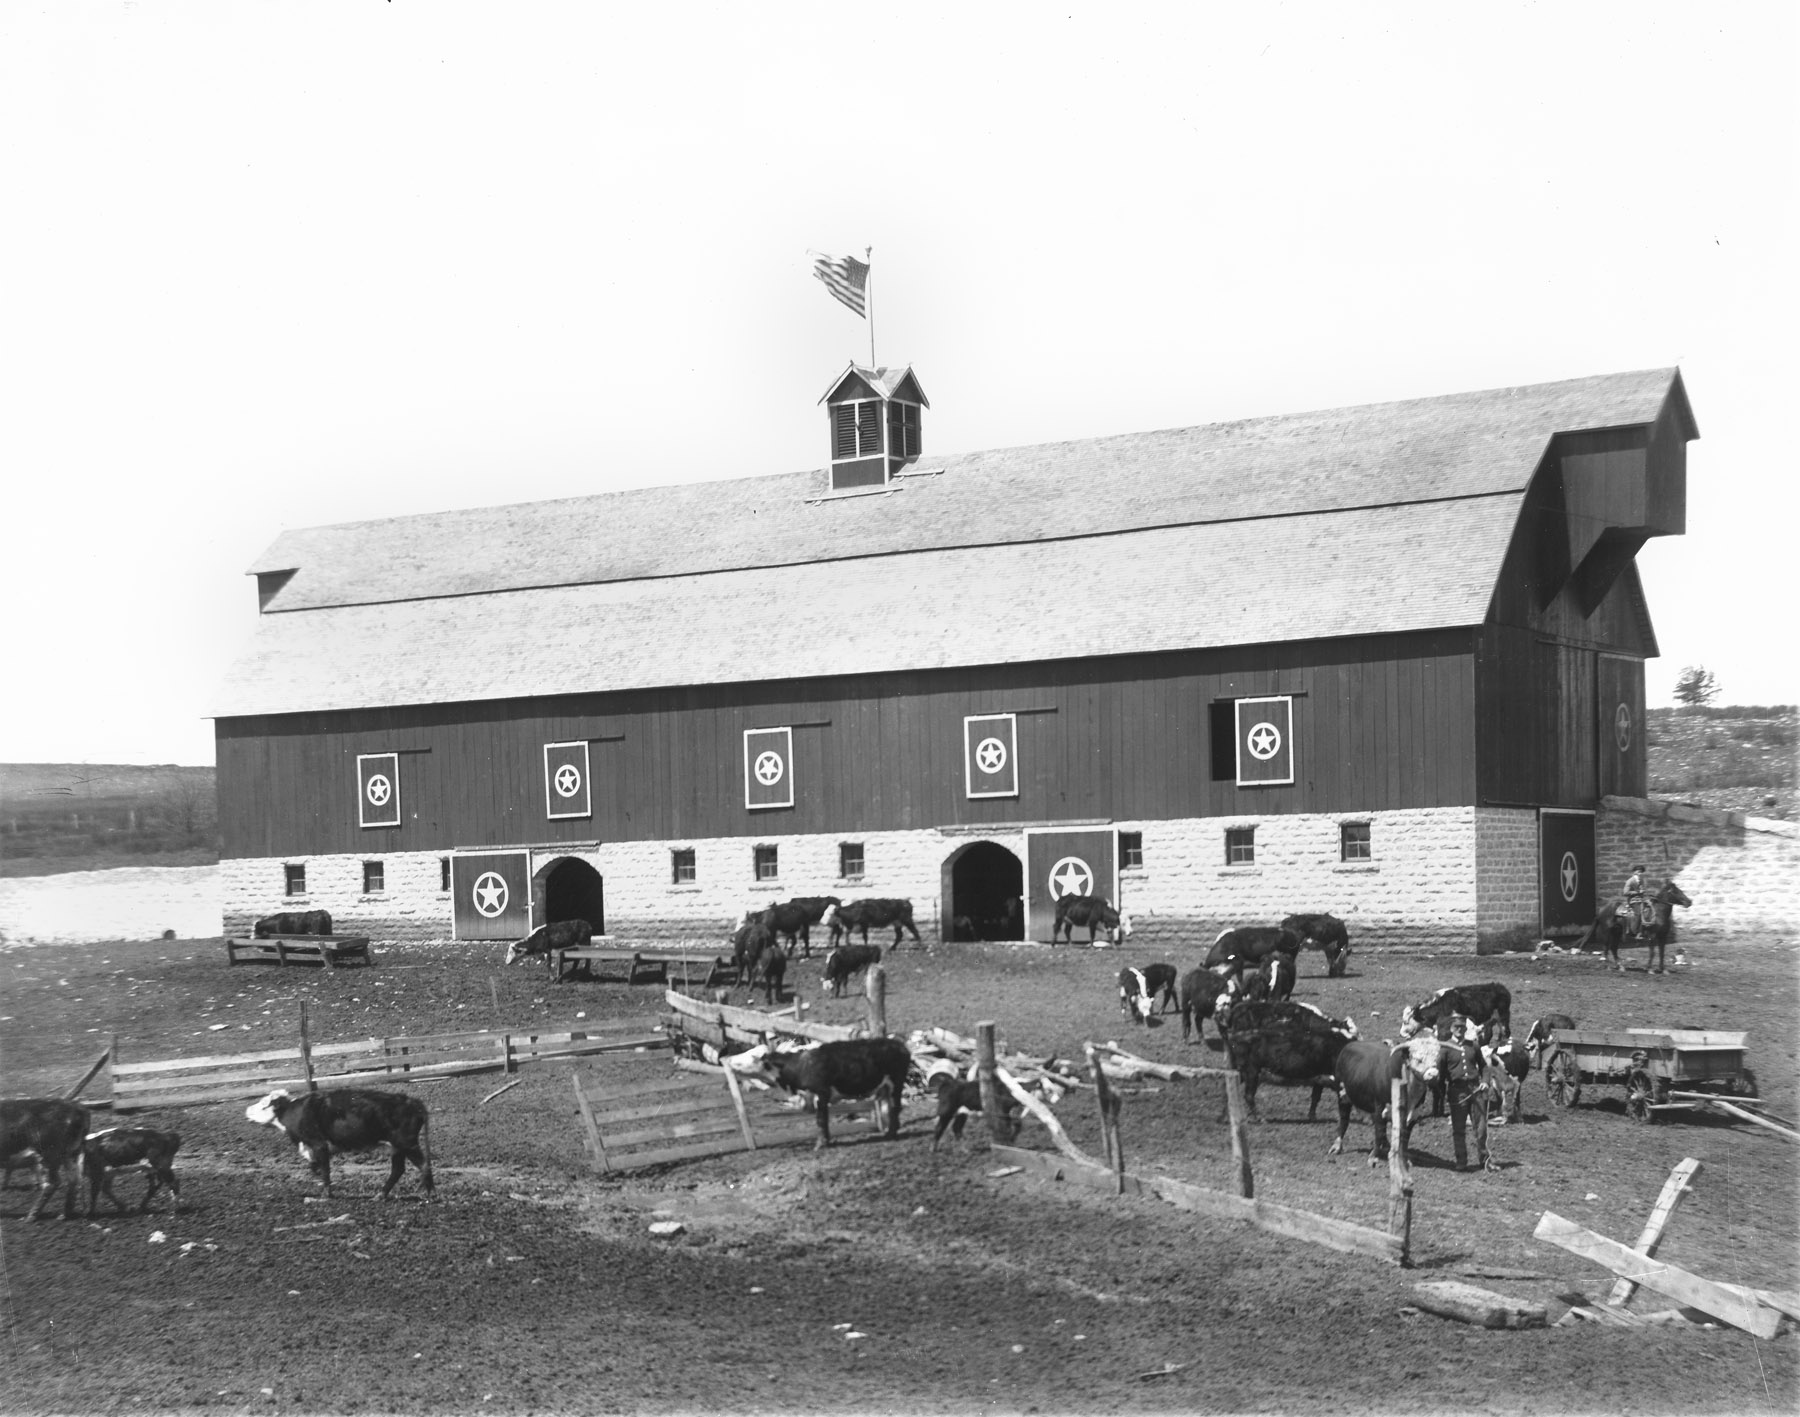 Barns of Wabaunsee County